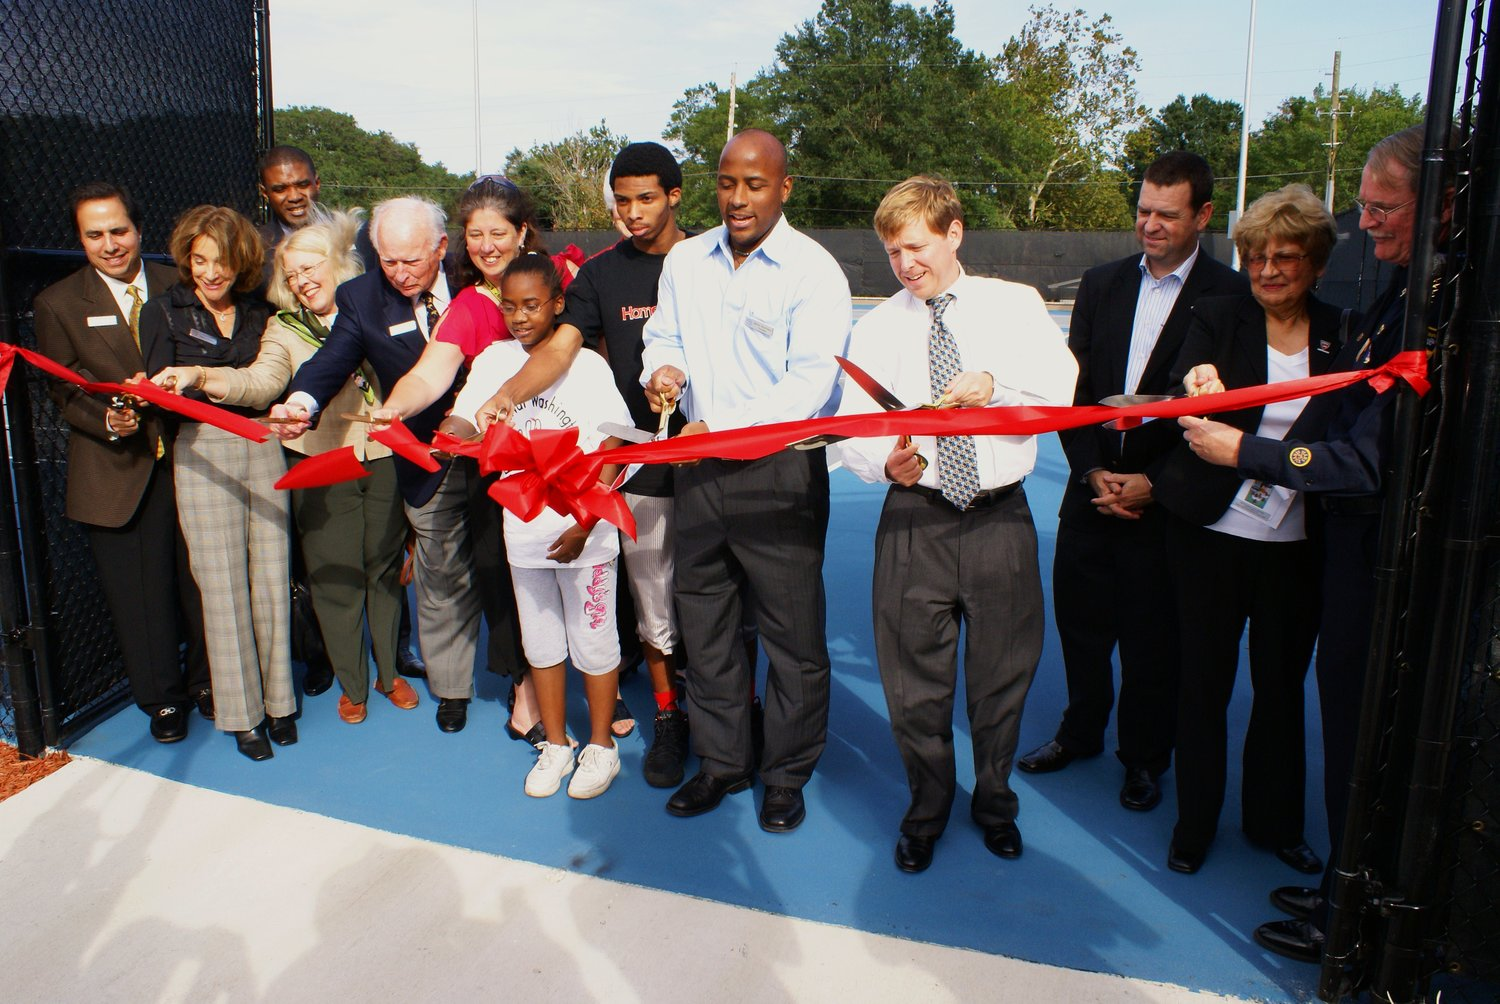 Grand opening of MWYF tennis courts in 2007.